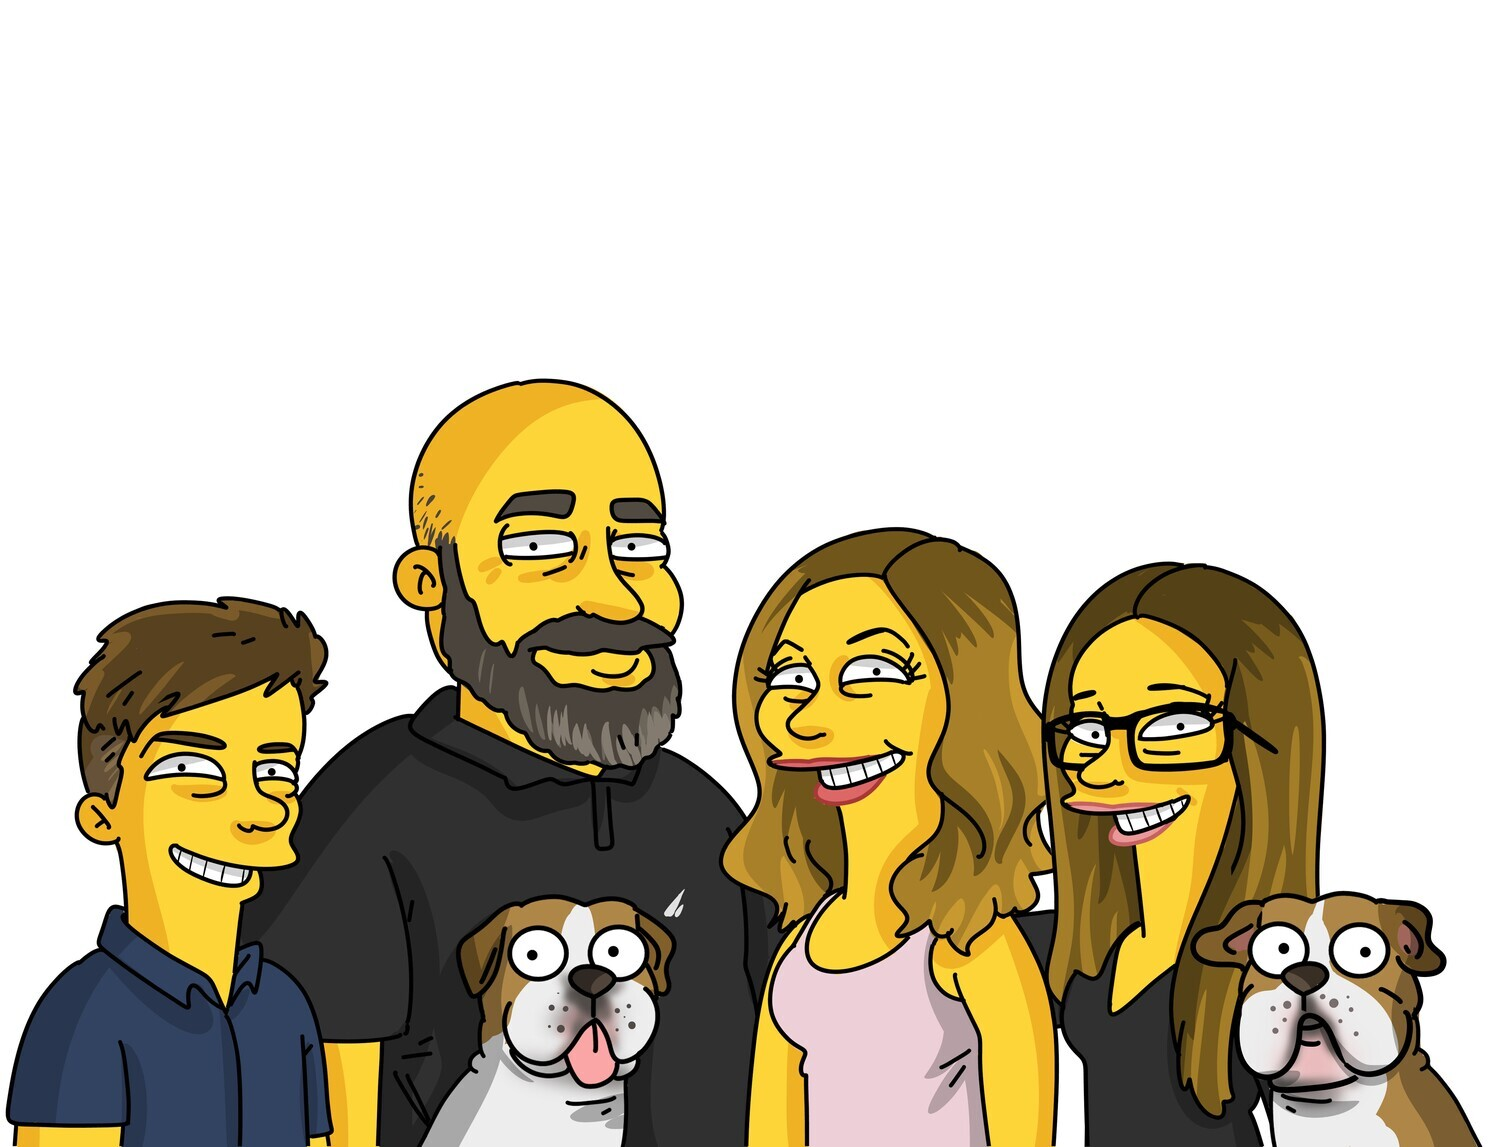 5 PERSON PORTRAIT HAND DRAWN AND EMAILED TO YOU WITHIN 10 DAYS, REVISED UNTIL YOU ARE HAPPY